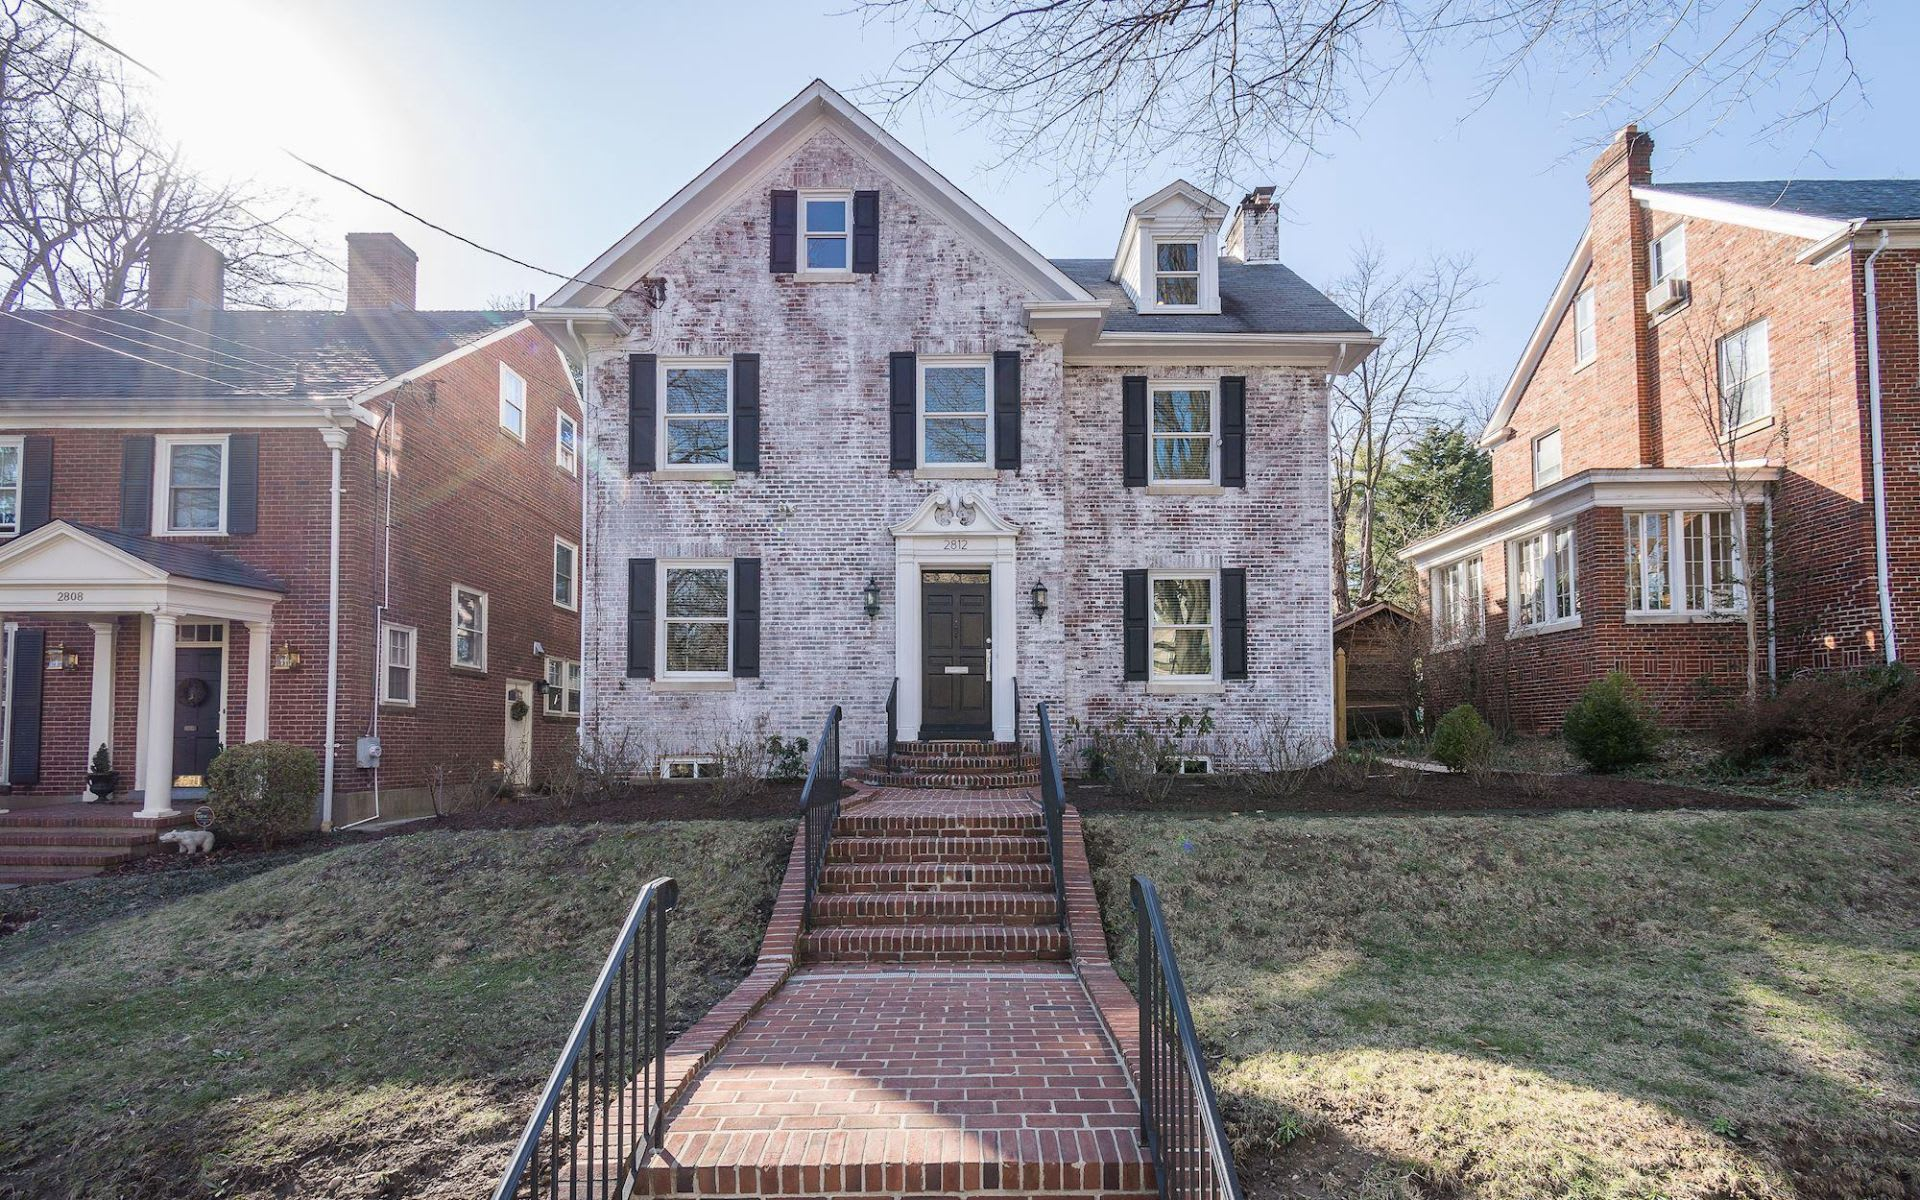 2812 34th St NW photo